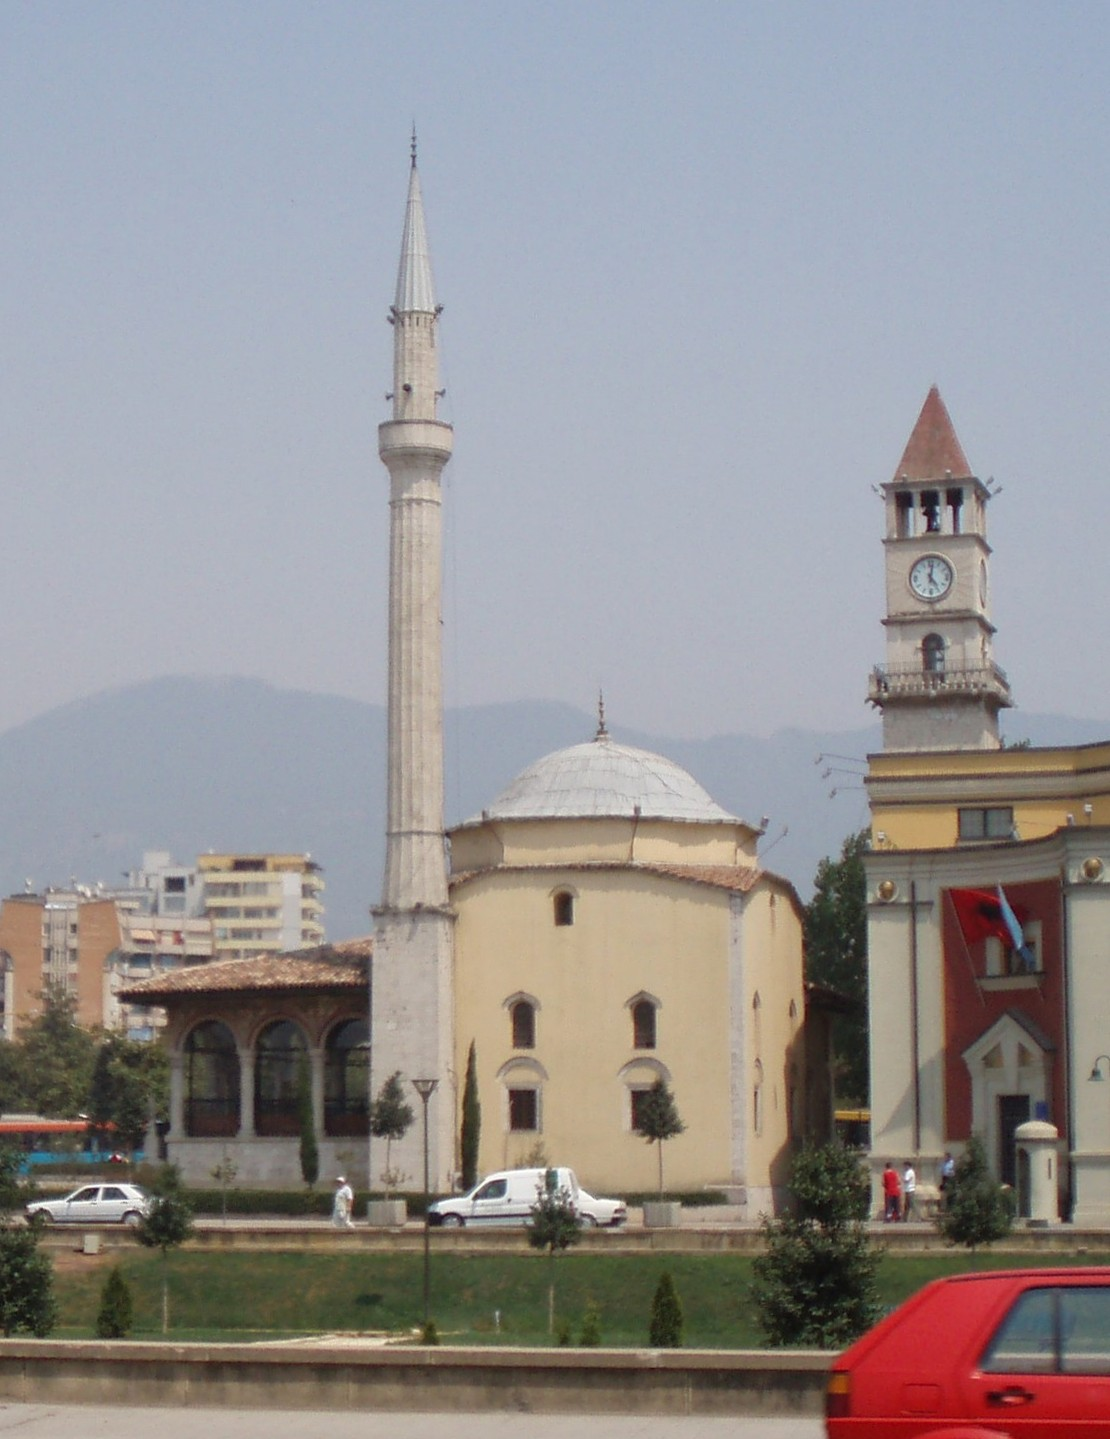 List of mosques in Europe | Religion-wiki | FANDOM powered ...